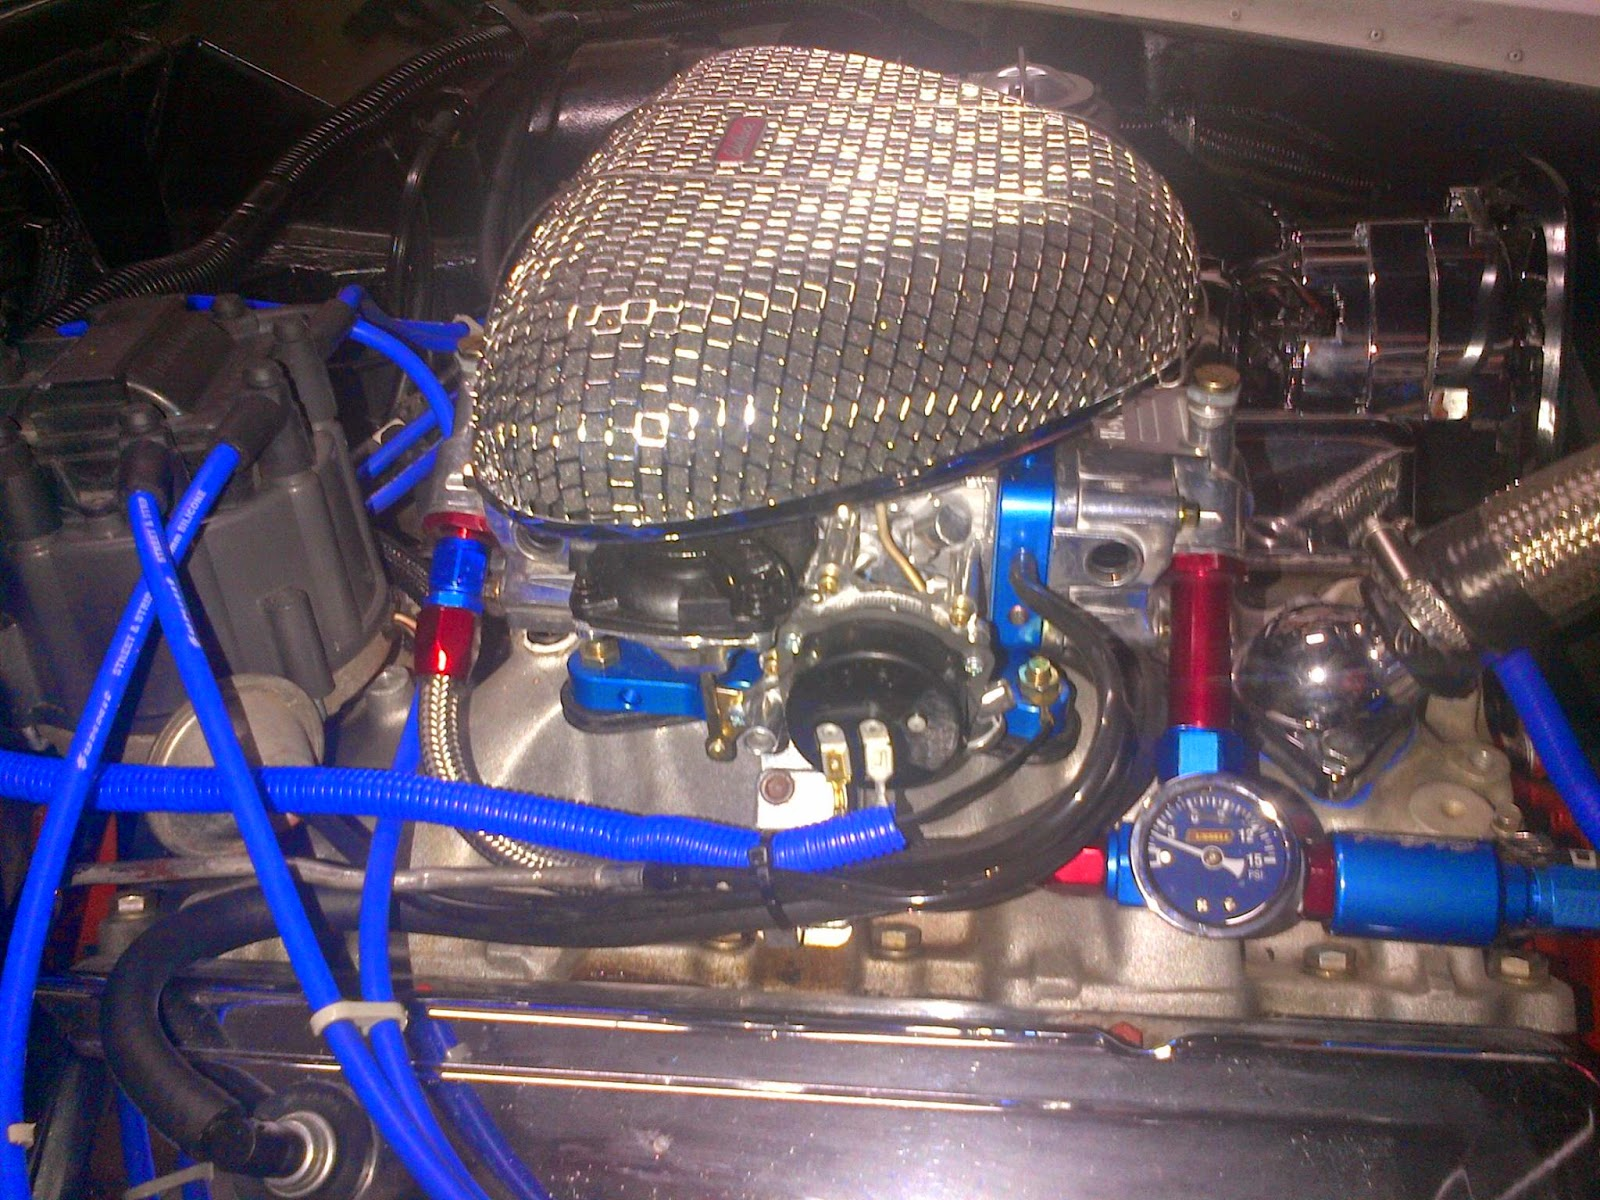 The carb is a Holley 750 cfm street avenger with blue fuel blocks to match the theme in the engine bay. The carb comes with rubber fuel lines as a kit to ... & Andersen Corvette Racing: Army Navy Fuel Line